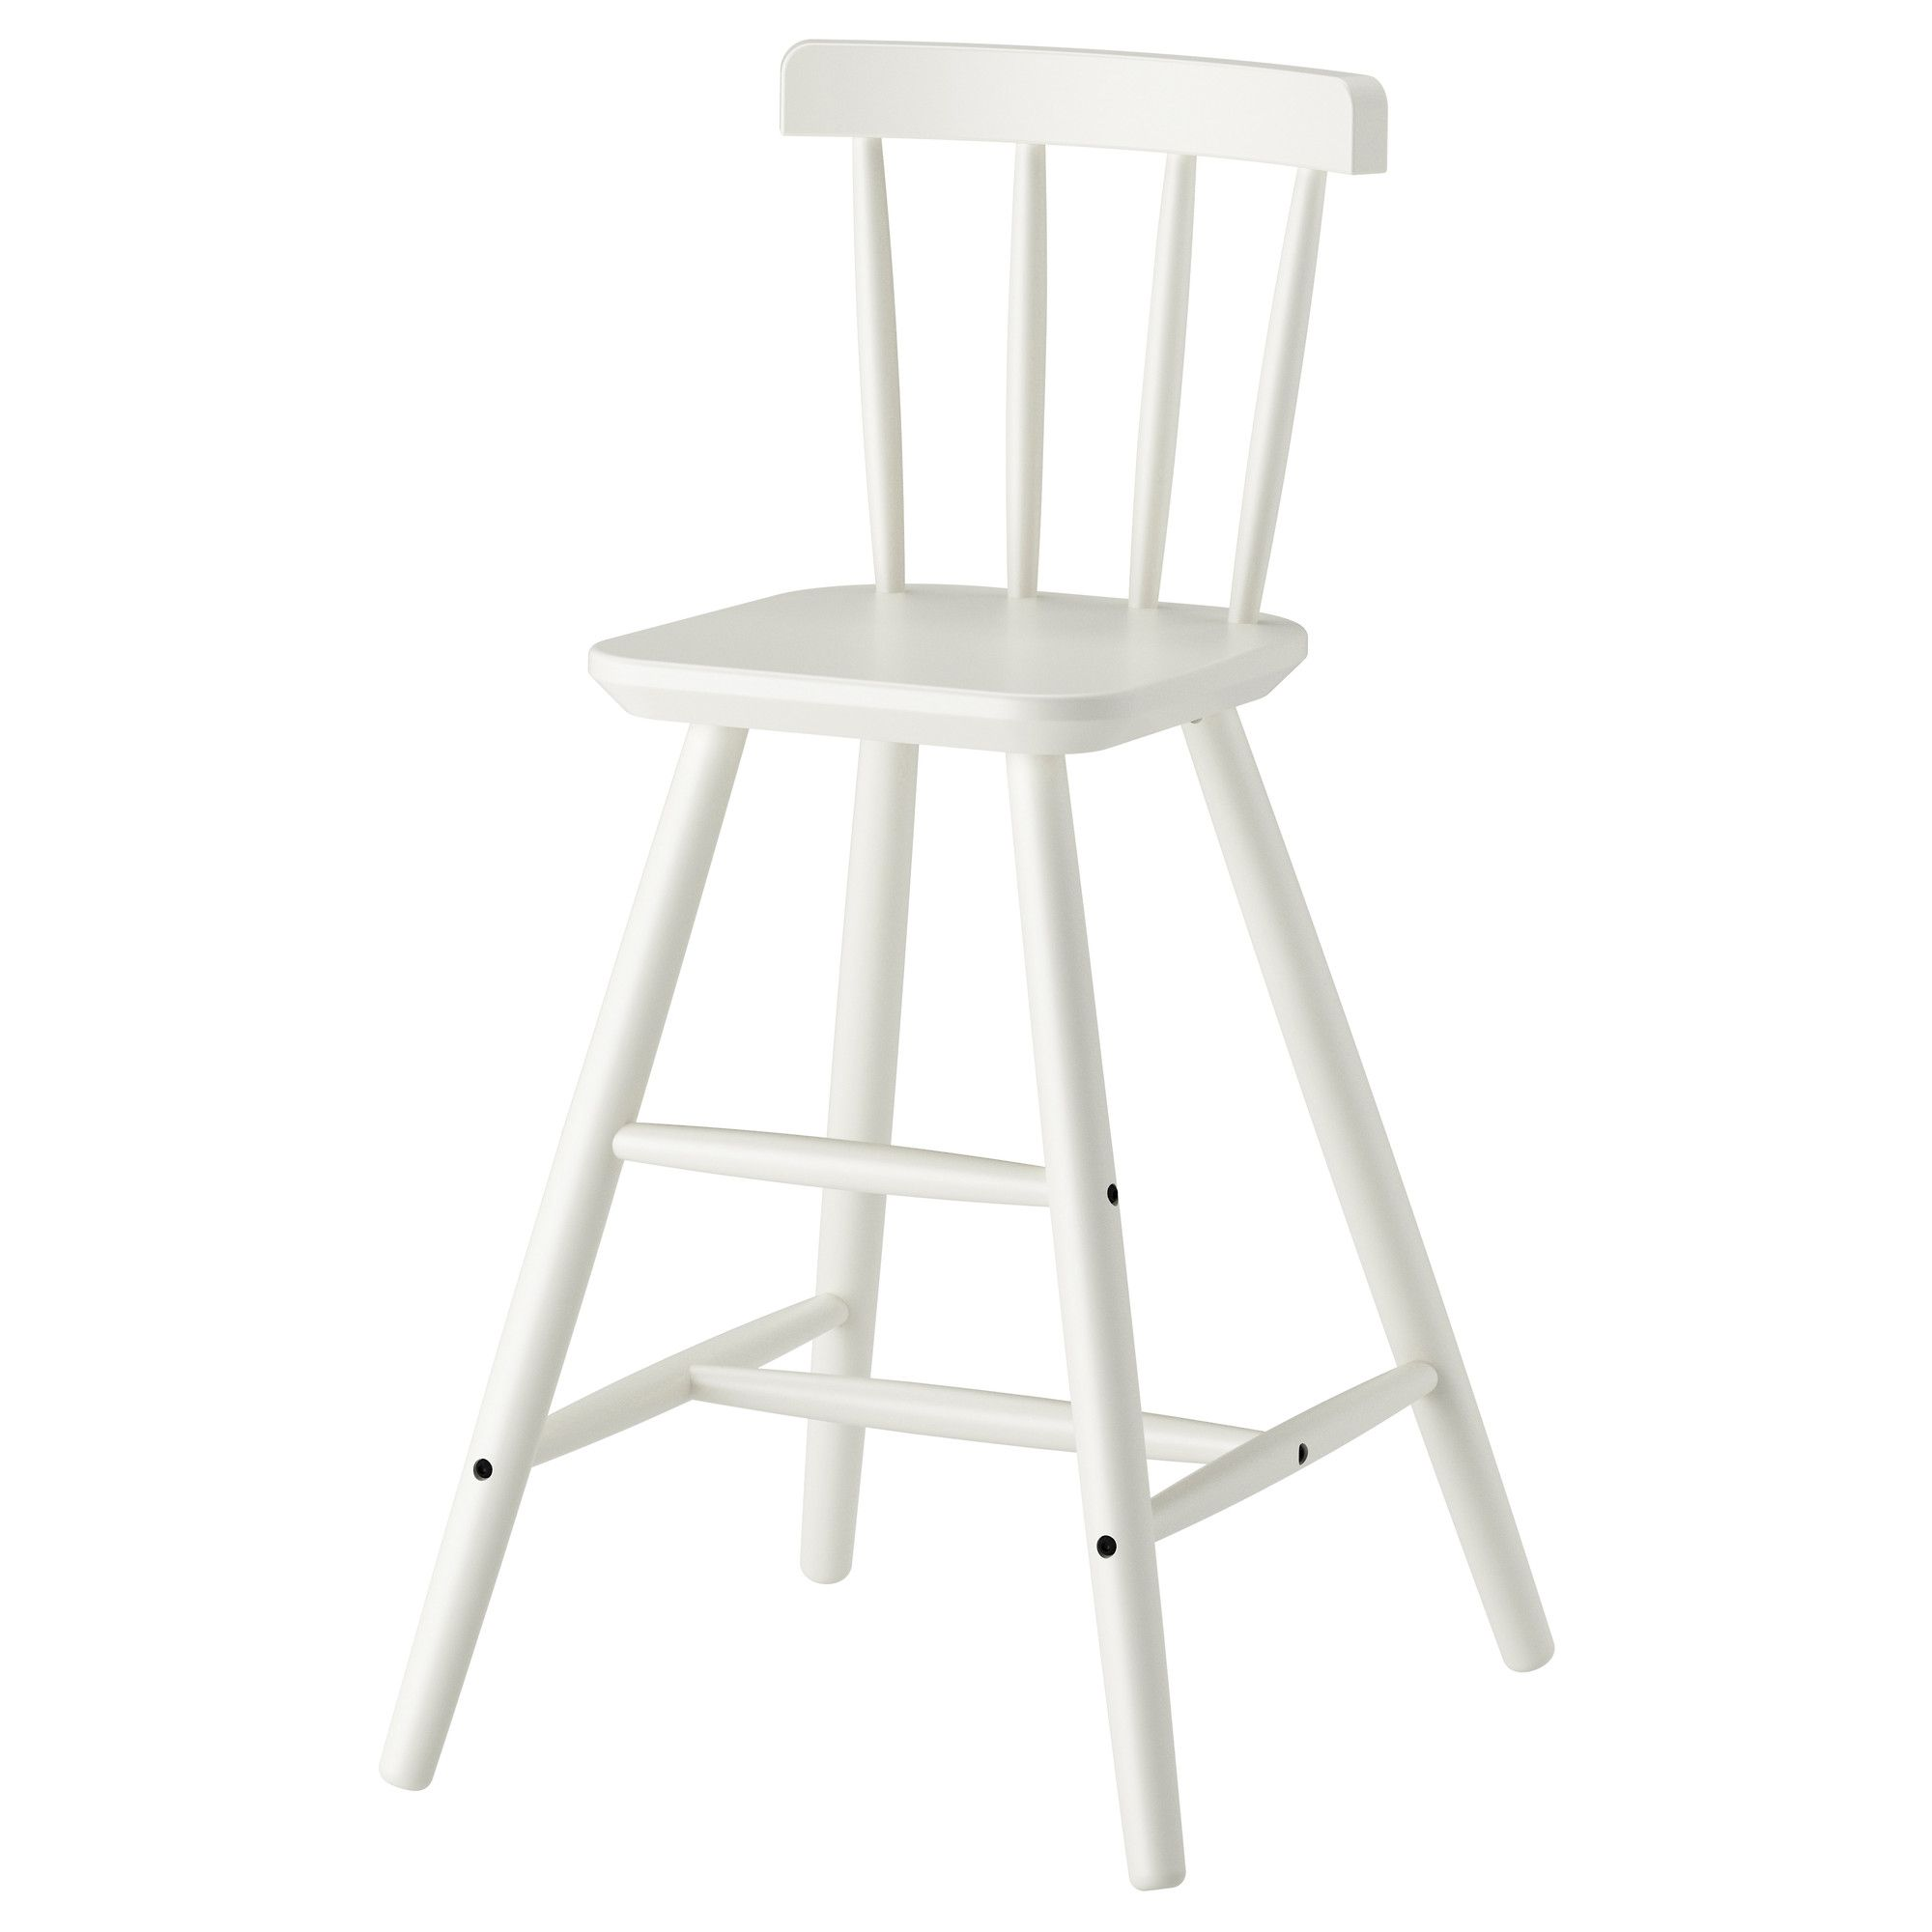 Just the right height for kids better than a booster chair AGAM Junior chair